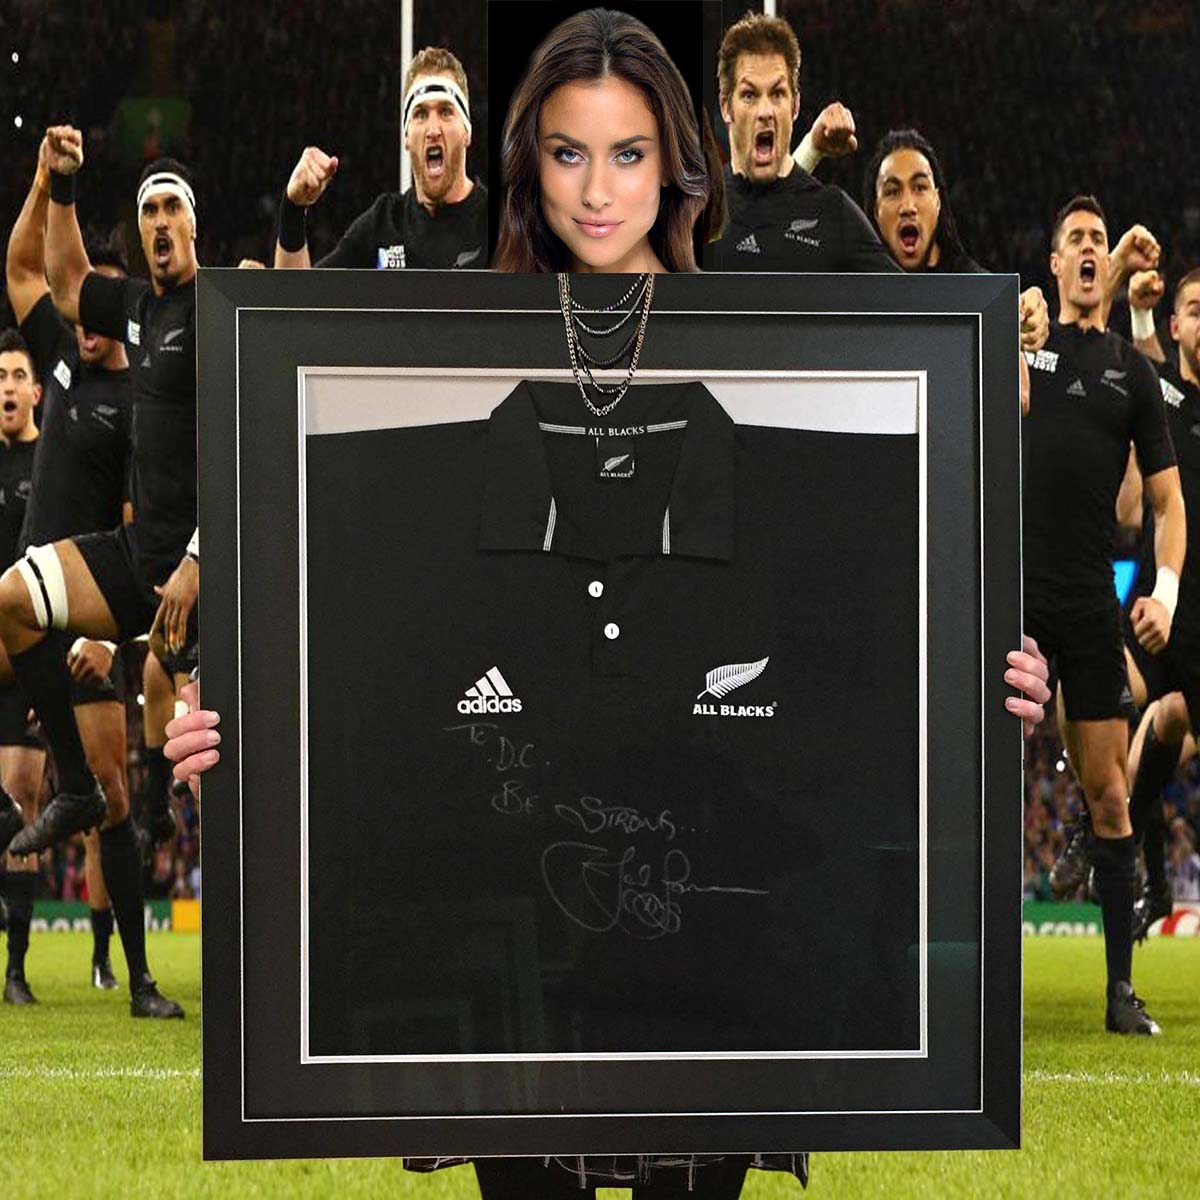 Jonah Lomu signed Jersey Frame- a very unique and valuable jersey